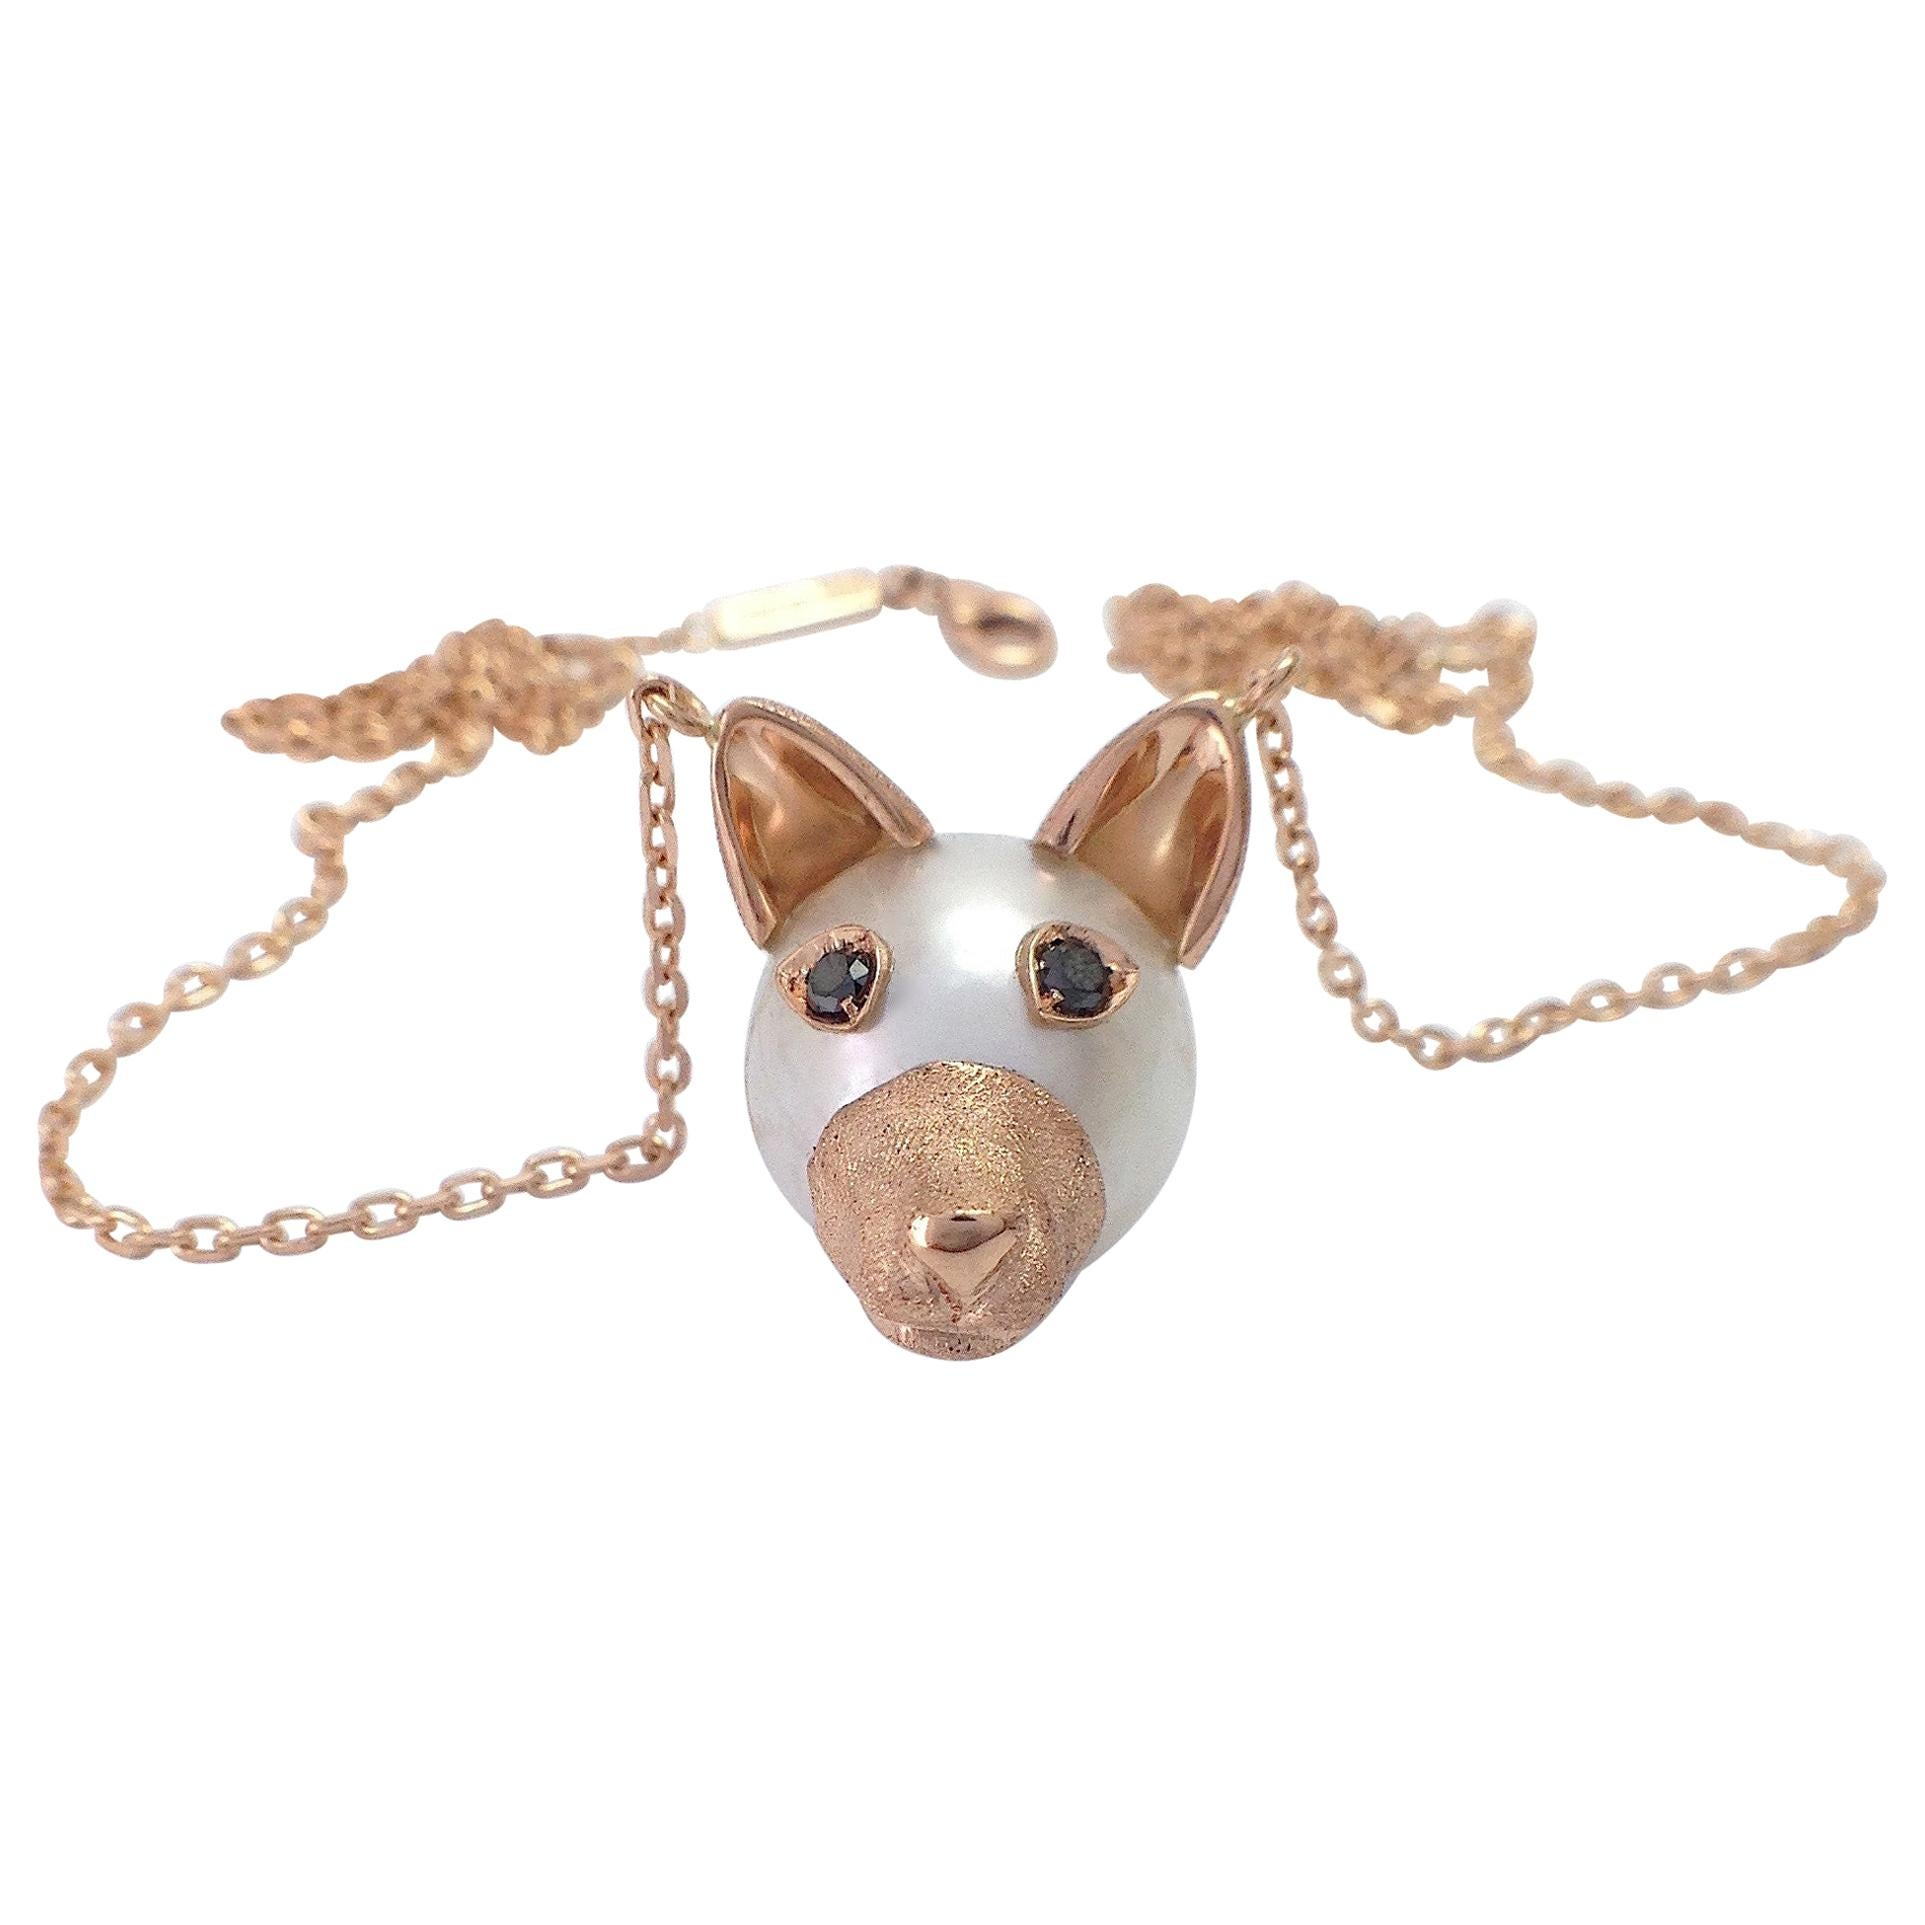 Petronilla Dog Black Diamond 18 Kt Red Gold Pearl Pendant Necklace Made in Italy